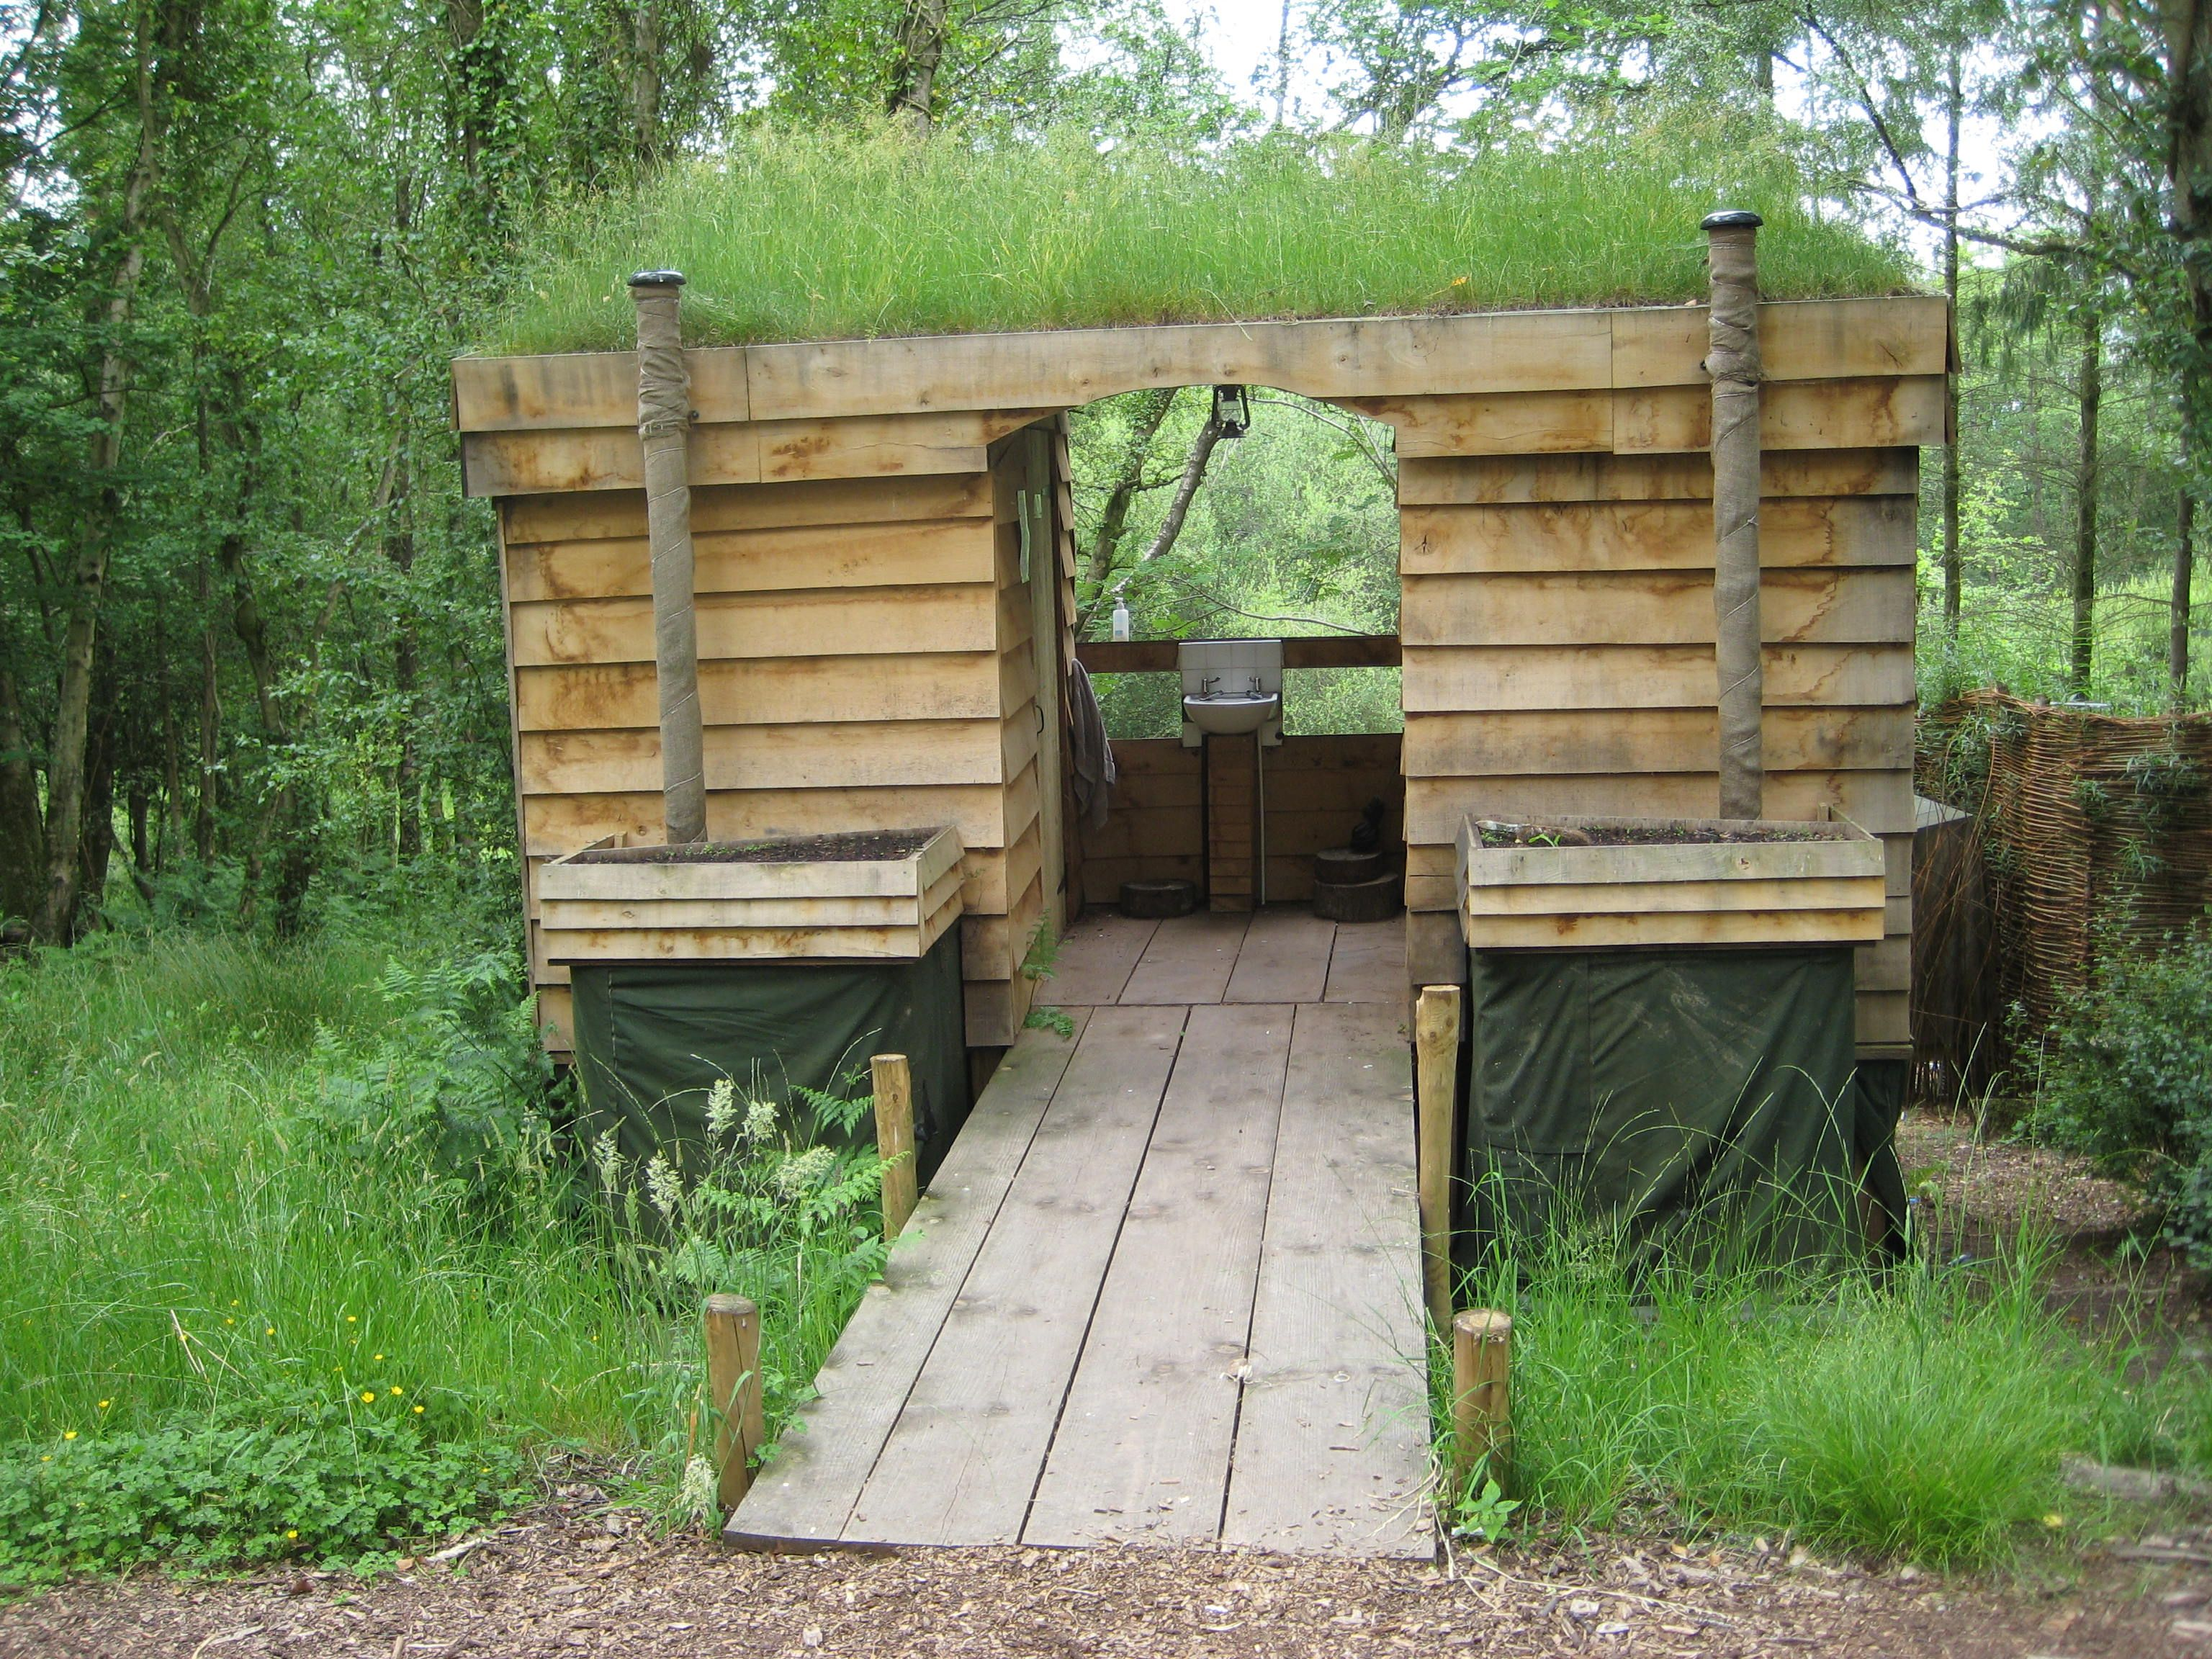 Camping Composting Toilet : The eco toilets at guy mallinson s woodland carving campsite